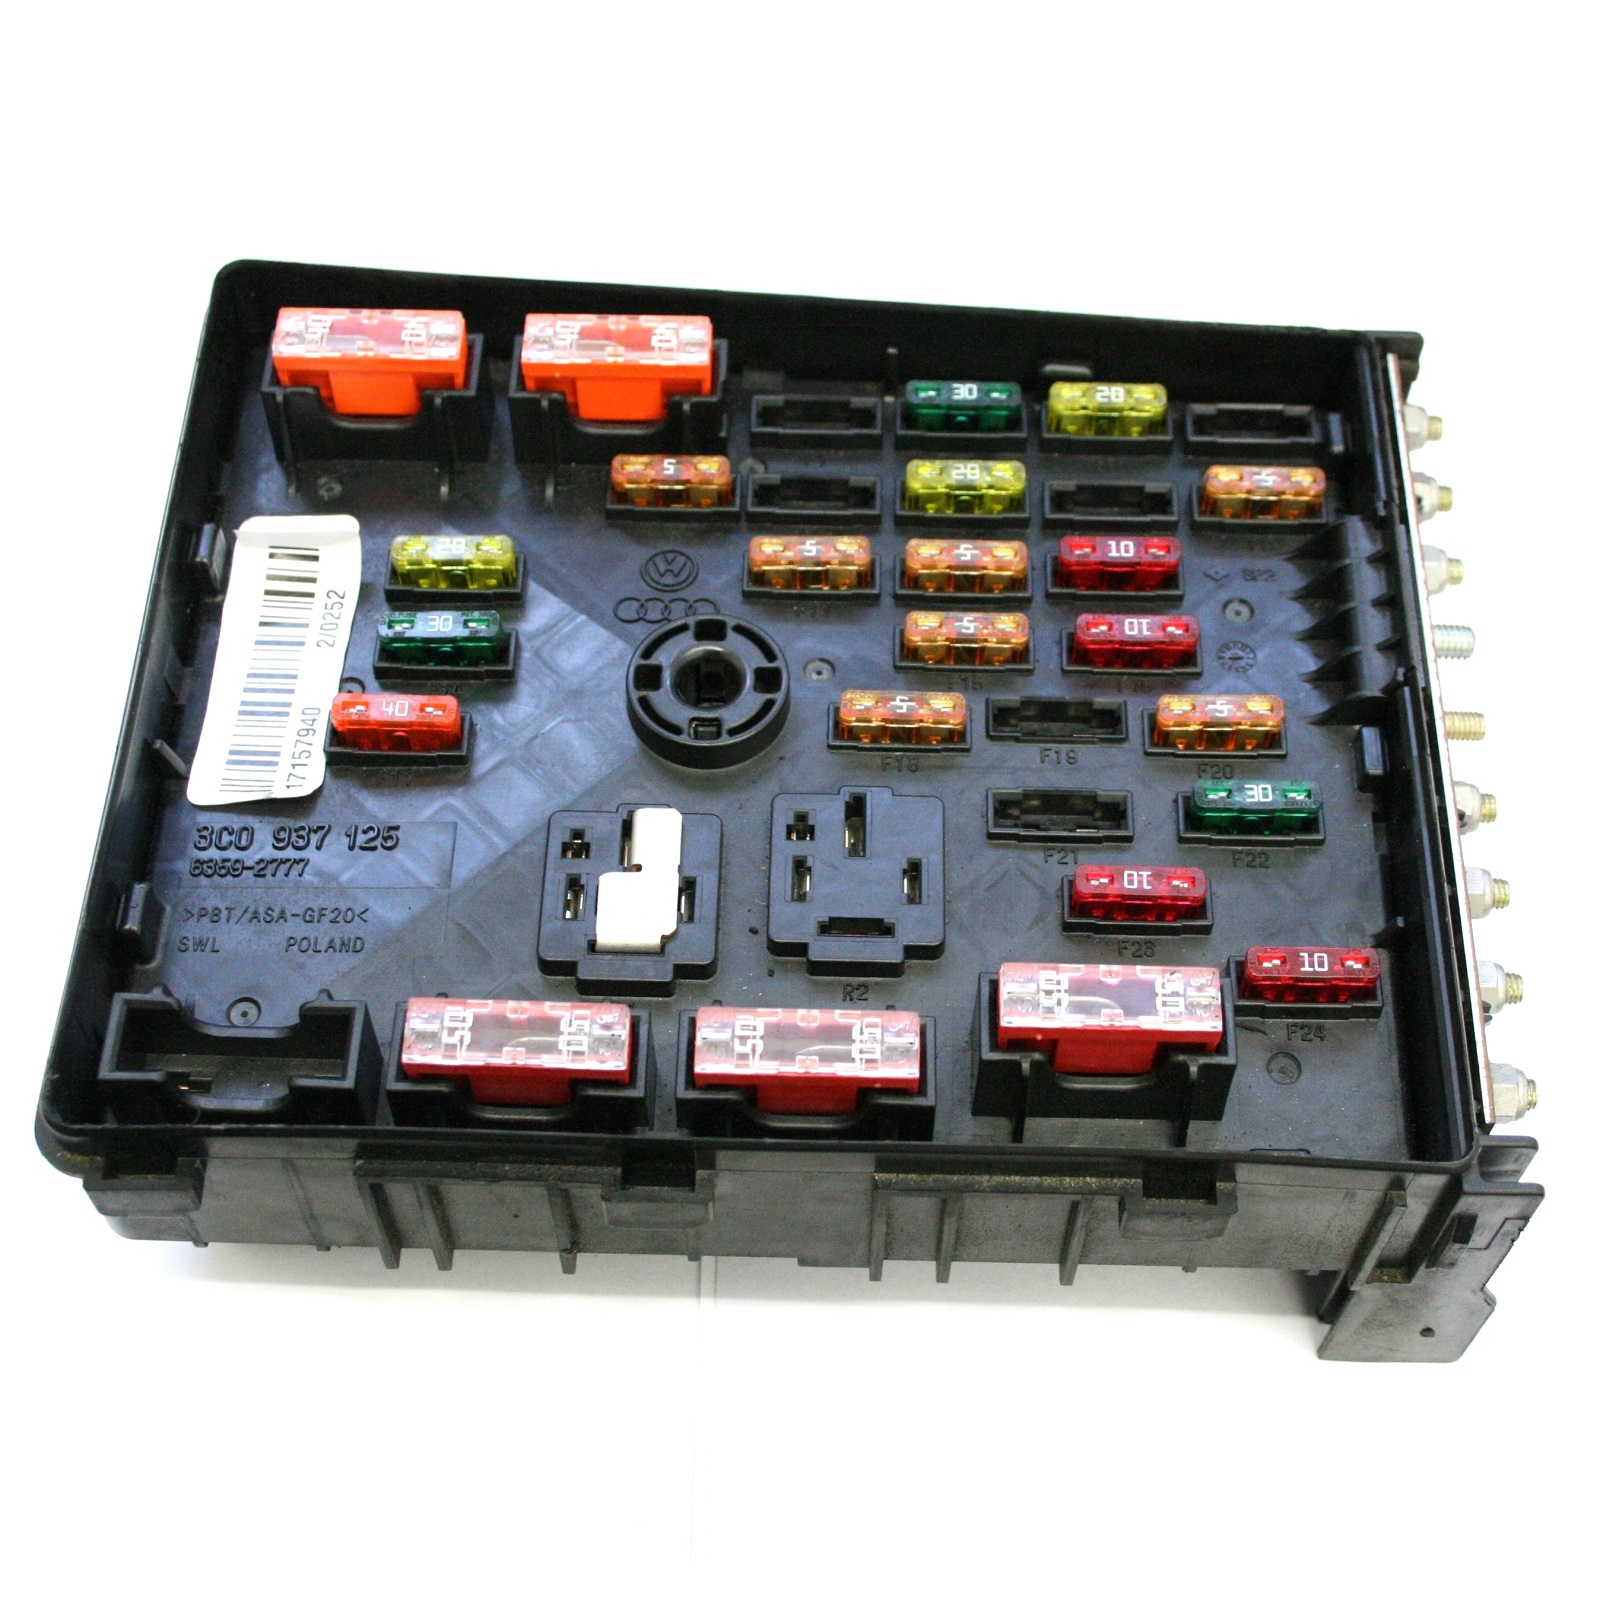 used genuine vw passat engine bay fuse box genuine oem 3c0 937 vw passat engine bay fuse box genuine oem£19 99